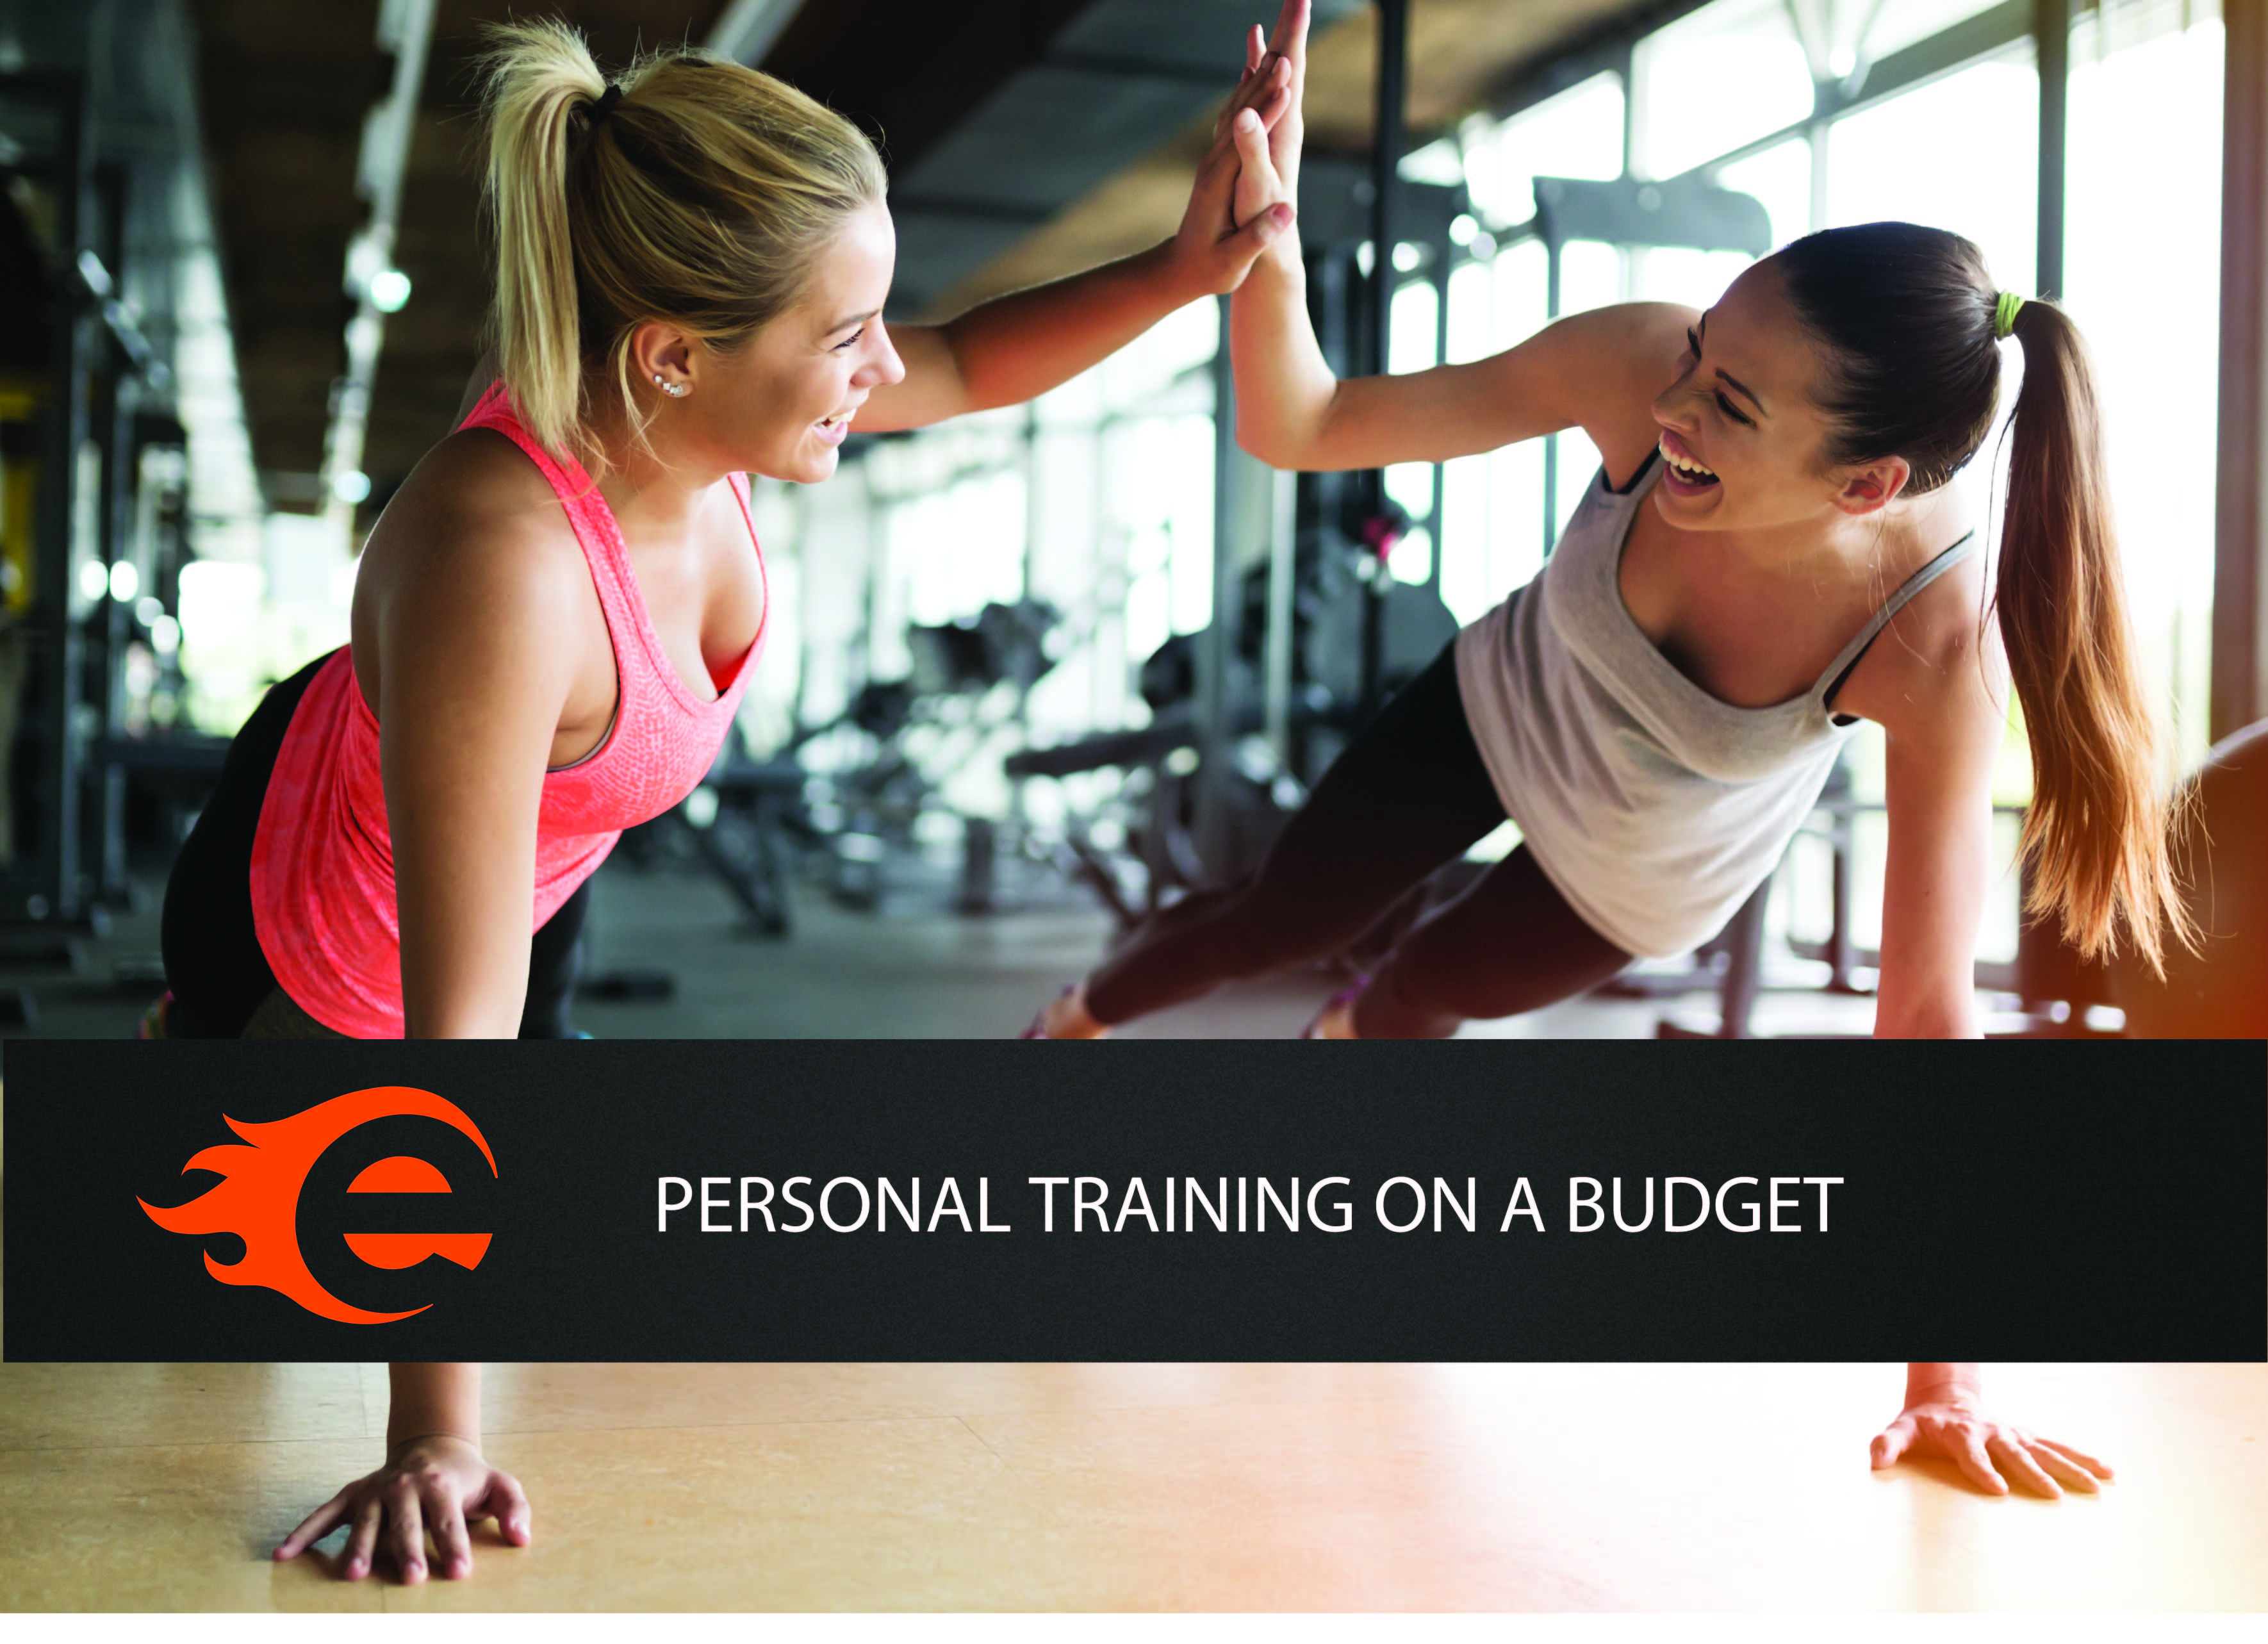 Personal Training on a Budget